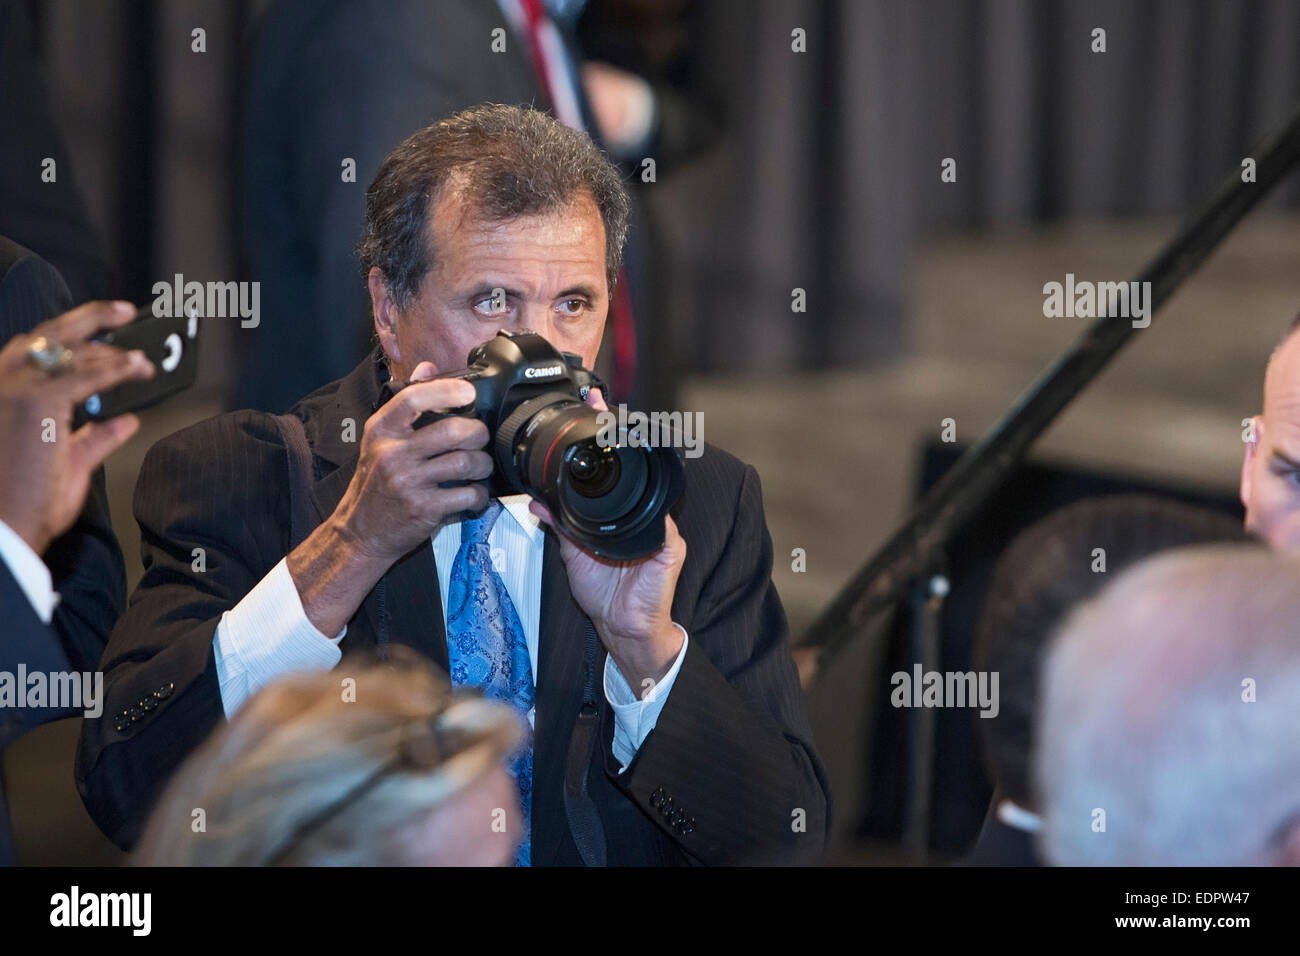 Wayne, Michigan - White House photographer Pete Souza at work during an appearance by President Obama at Ford's - Stock Image